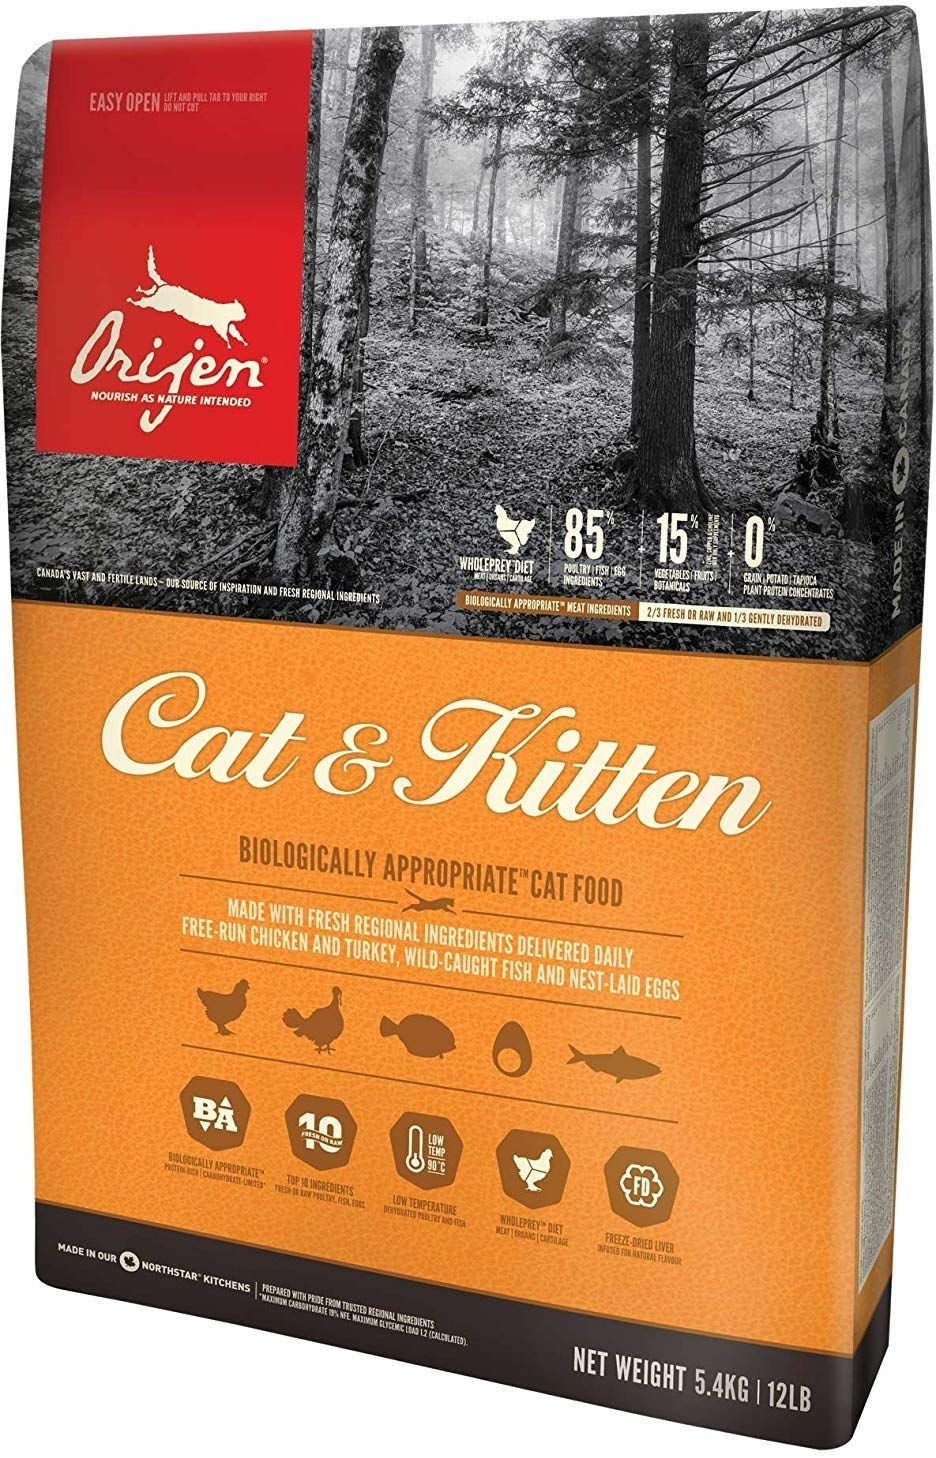 Orijen 12 Lb 1 Pack Cat And Kitten Dry Cat Food Biologically Appropriate For All Life Stages Read More At The Imag Dry Cat Food Kitten Food Cat Food